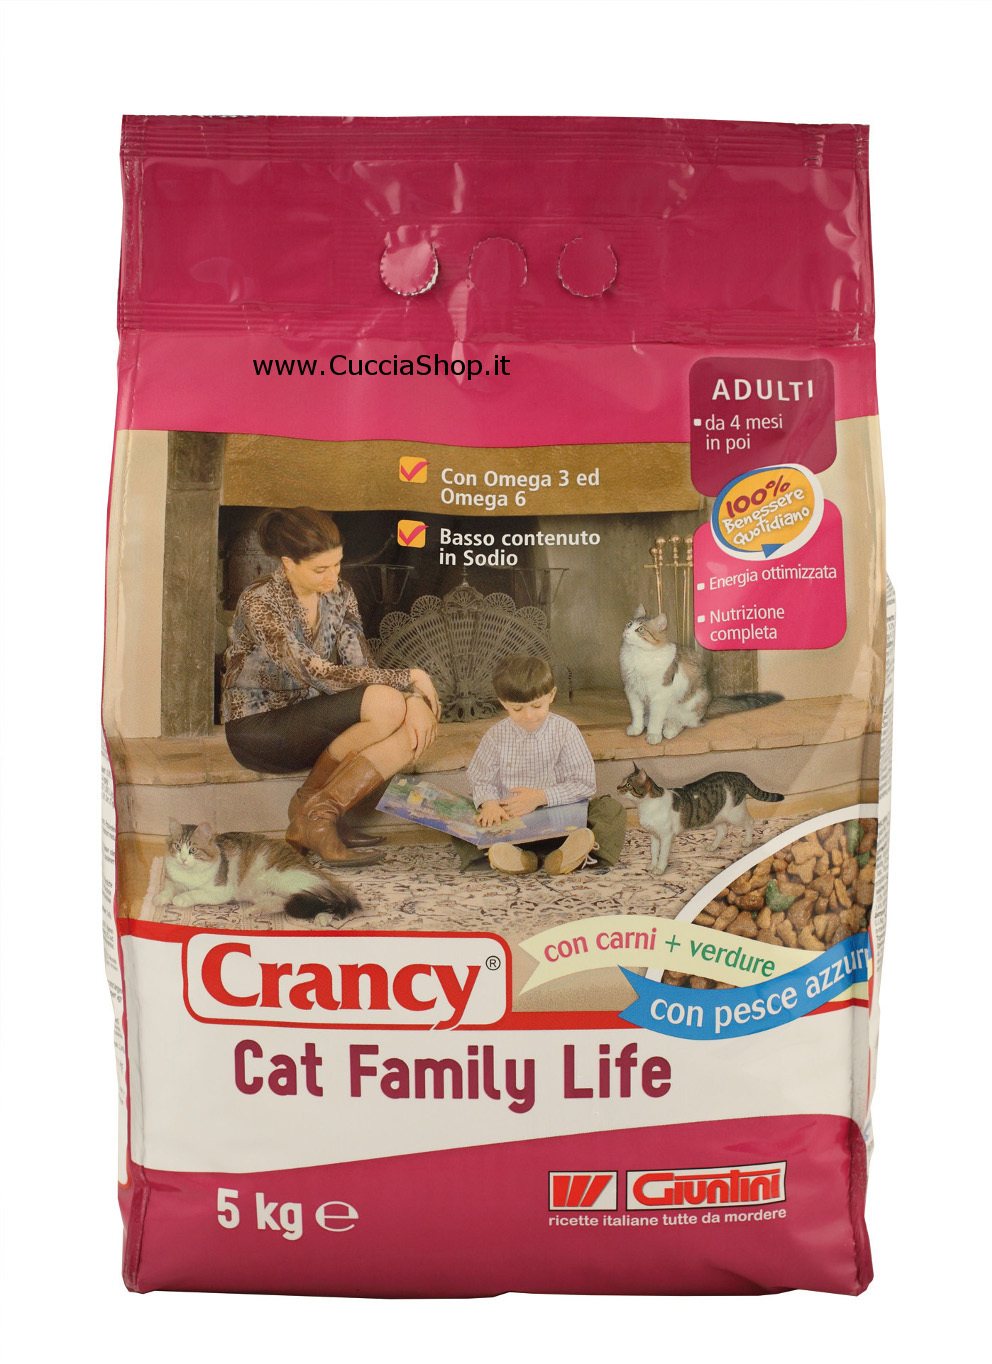 Crancy-Cat-Family-Life-5-kg-www.cucciashop.it